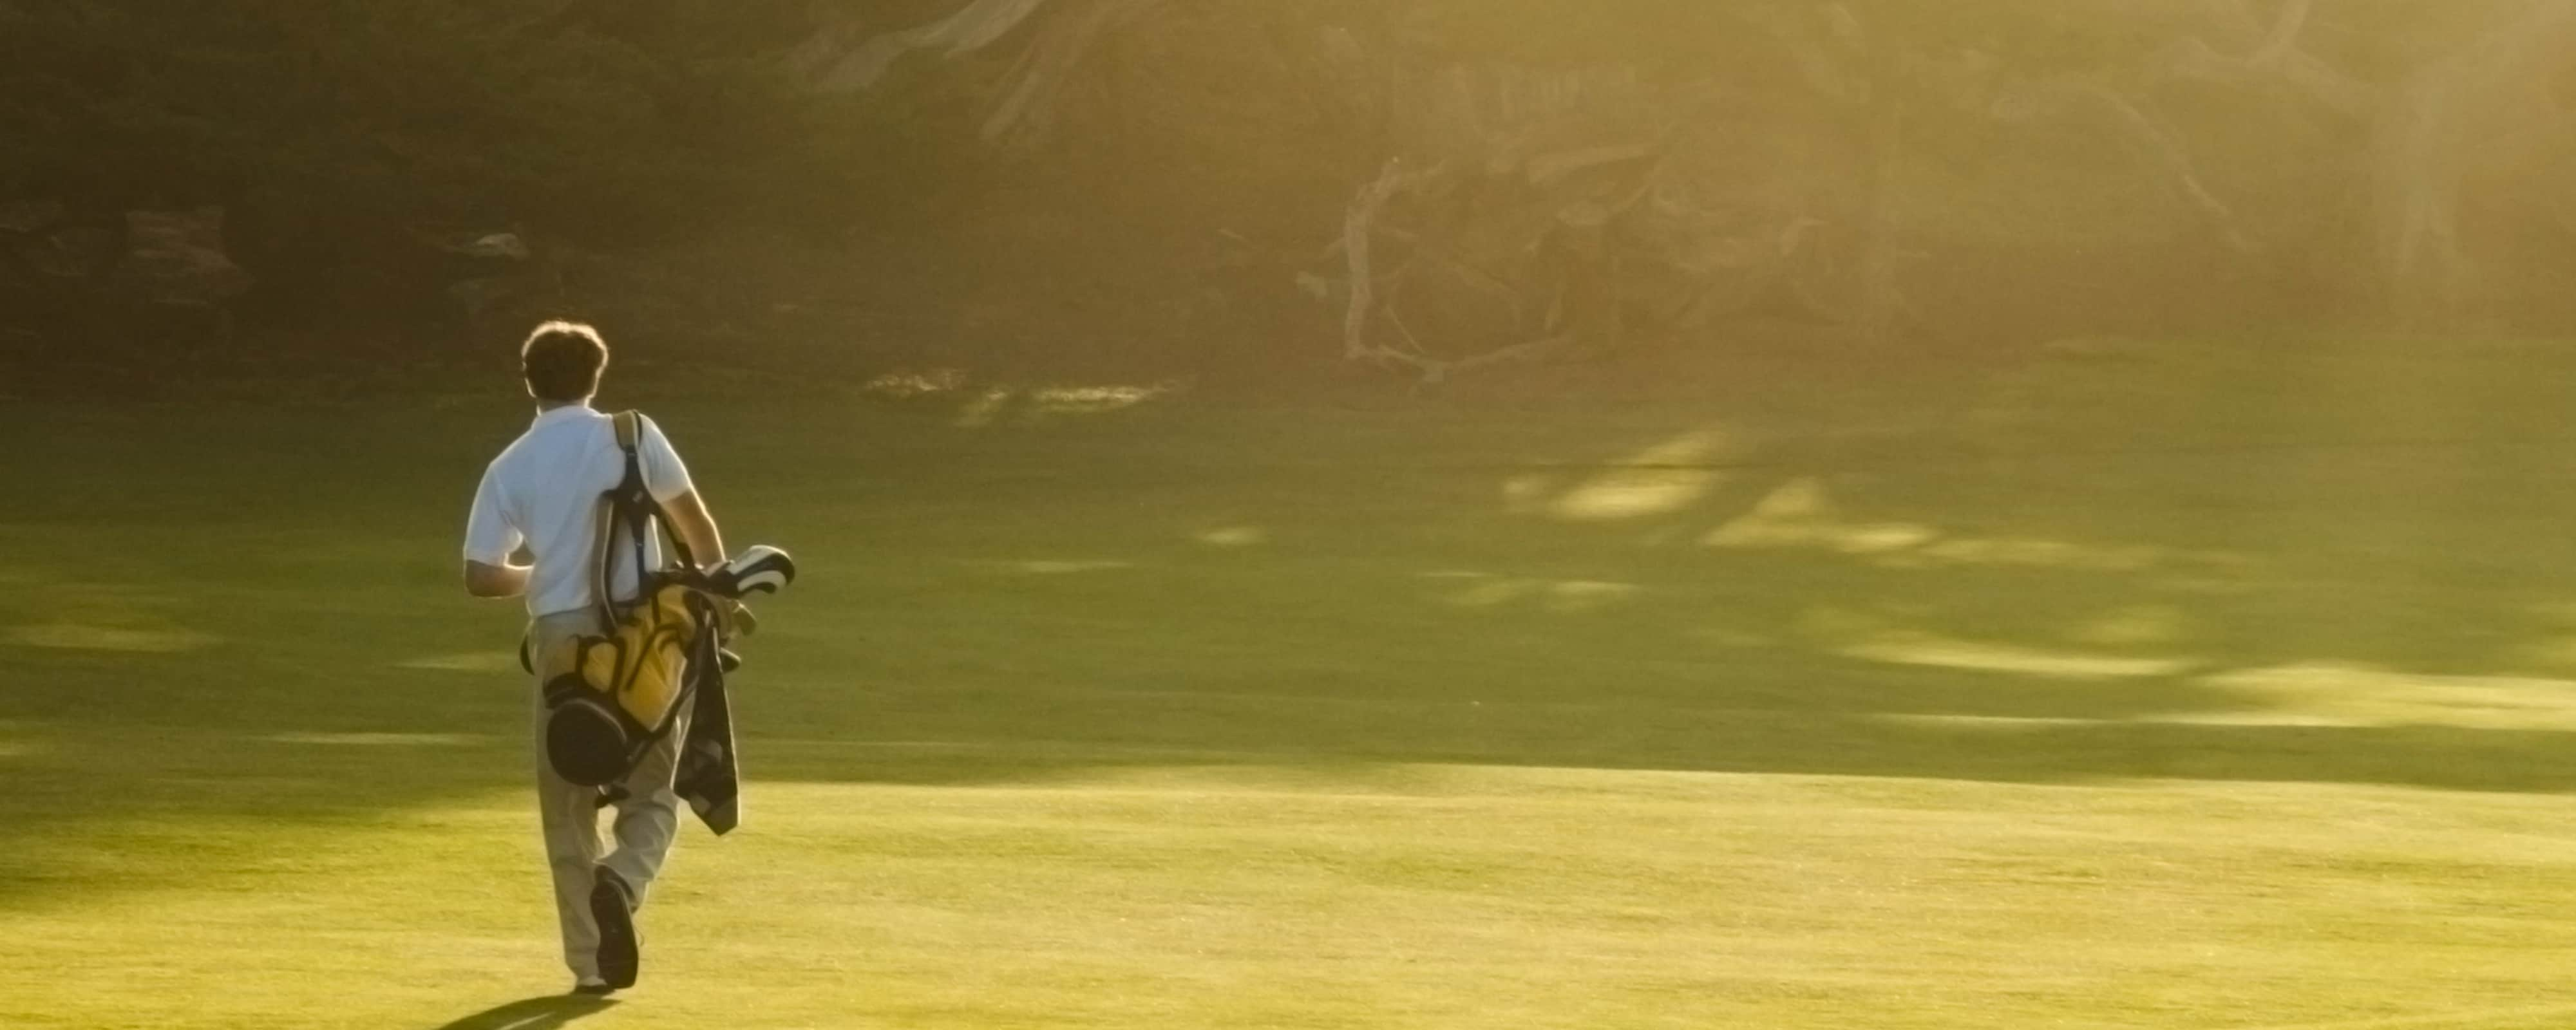 Protea business hotels feature golf courses